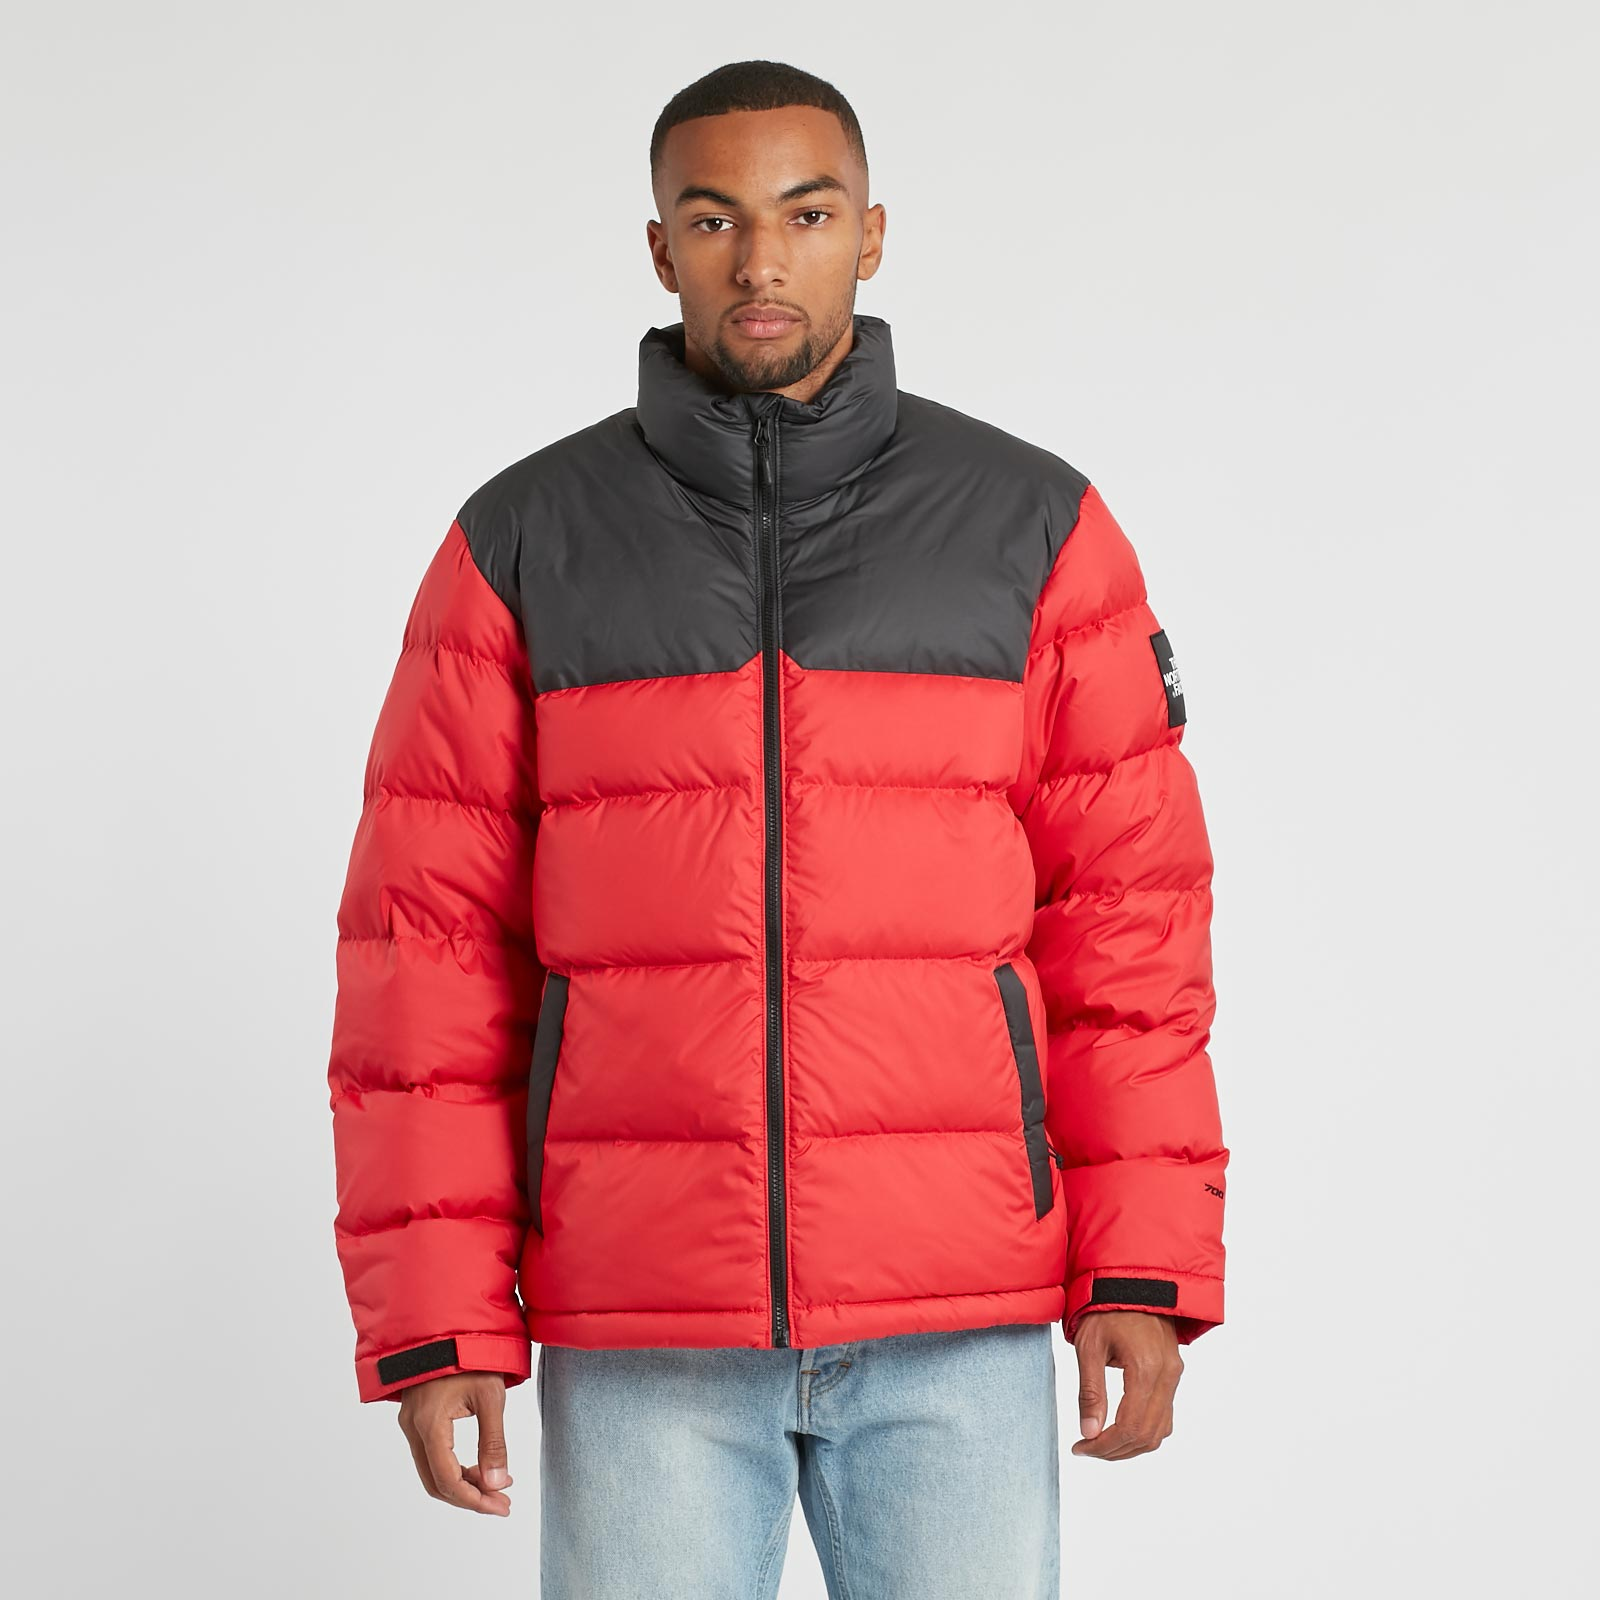 6305412c3 The North Face M 1992 Nuptse Jacket - T92zwe682 - Sneakersnstuff ...